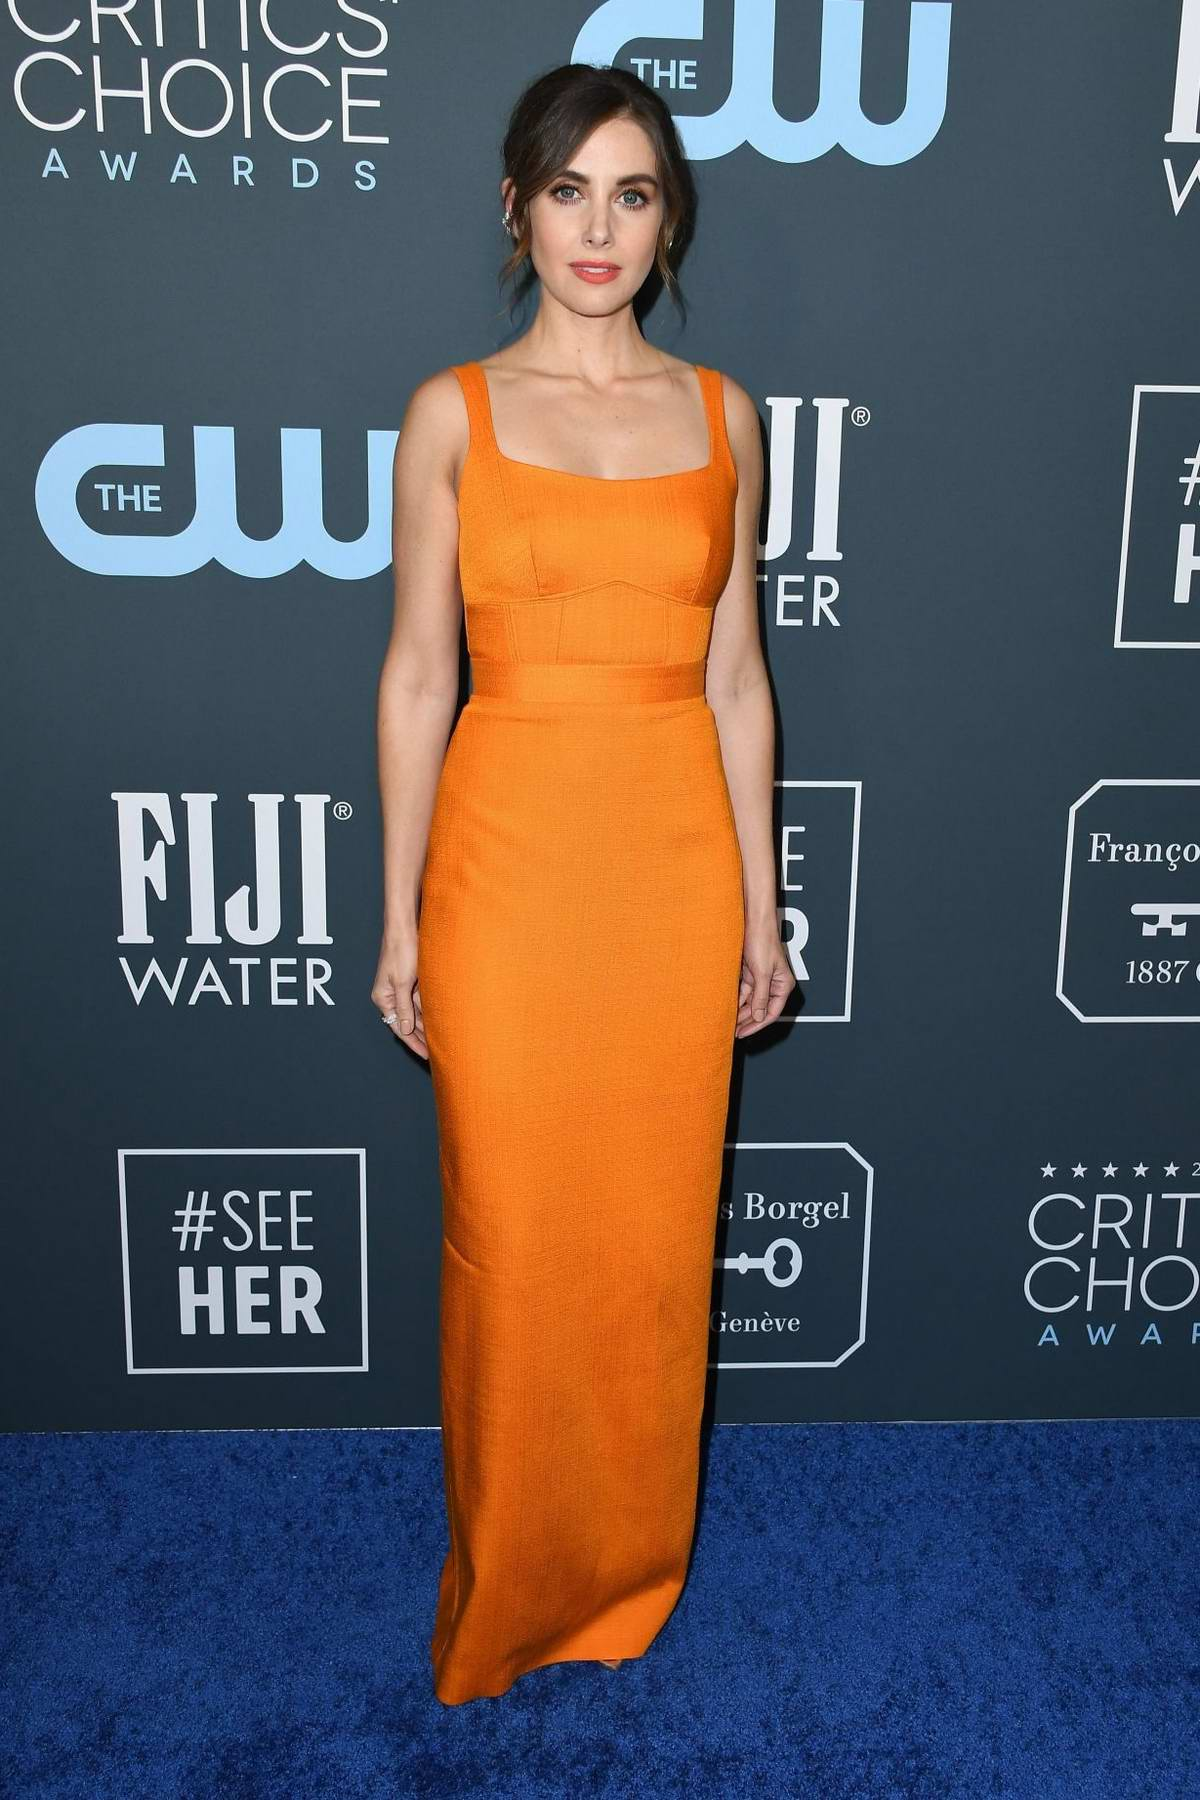 Alison Brie attends the 25th Annual Critics' Choice Awards at Barker Hangar in Santa Monica, California